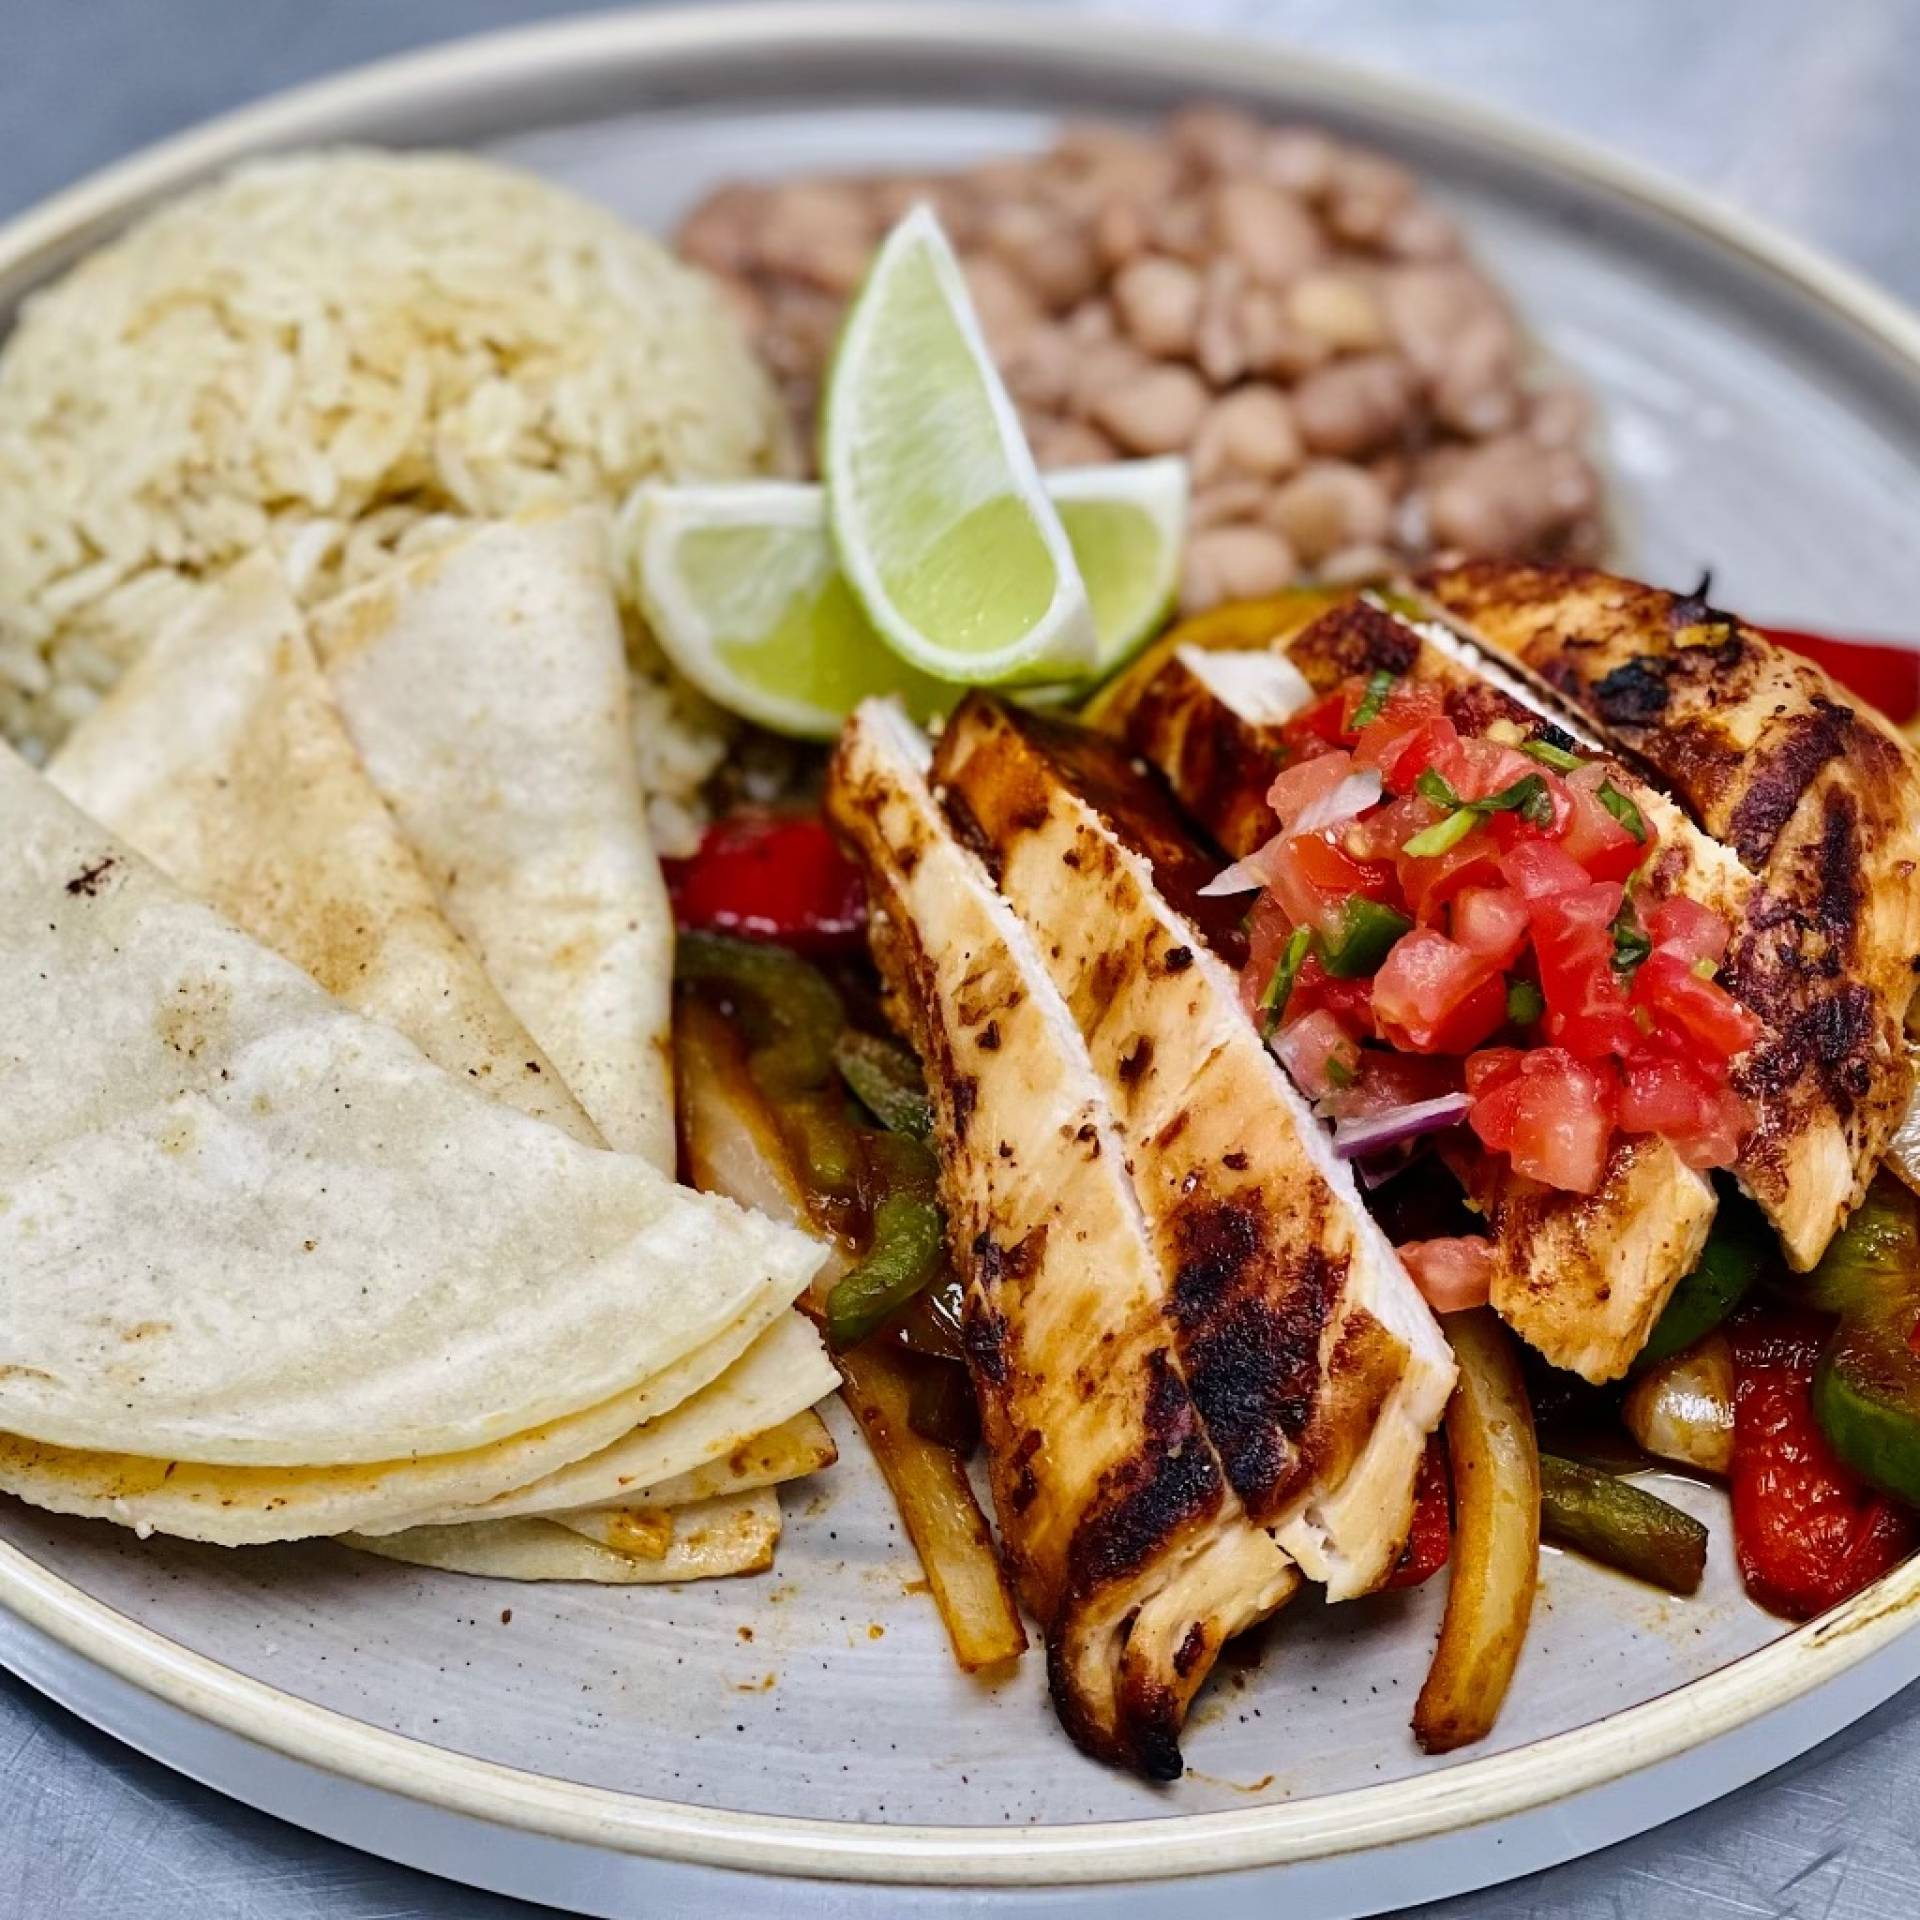 Fajitas with Grilled Chicken